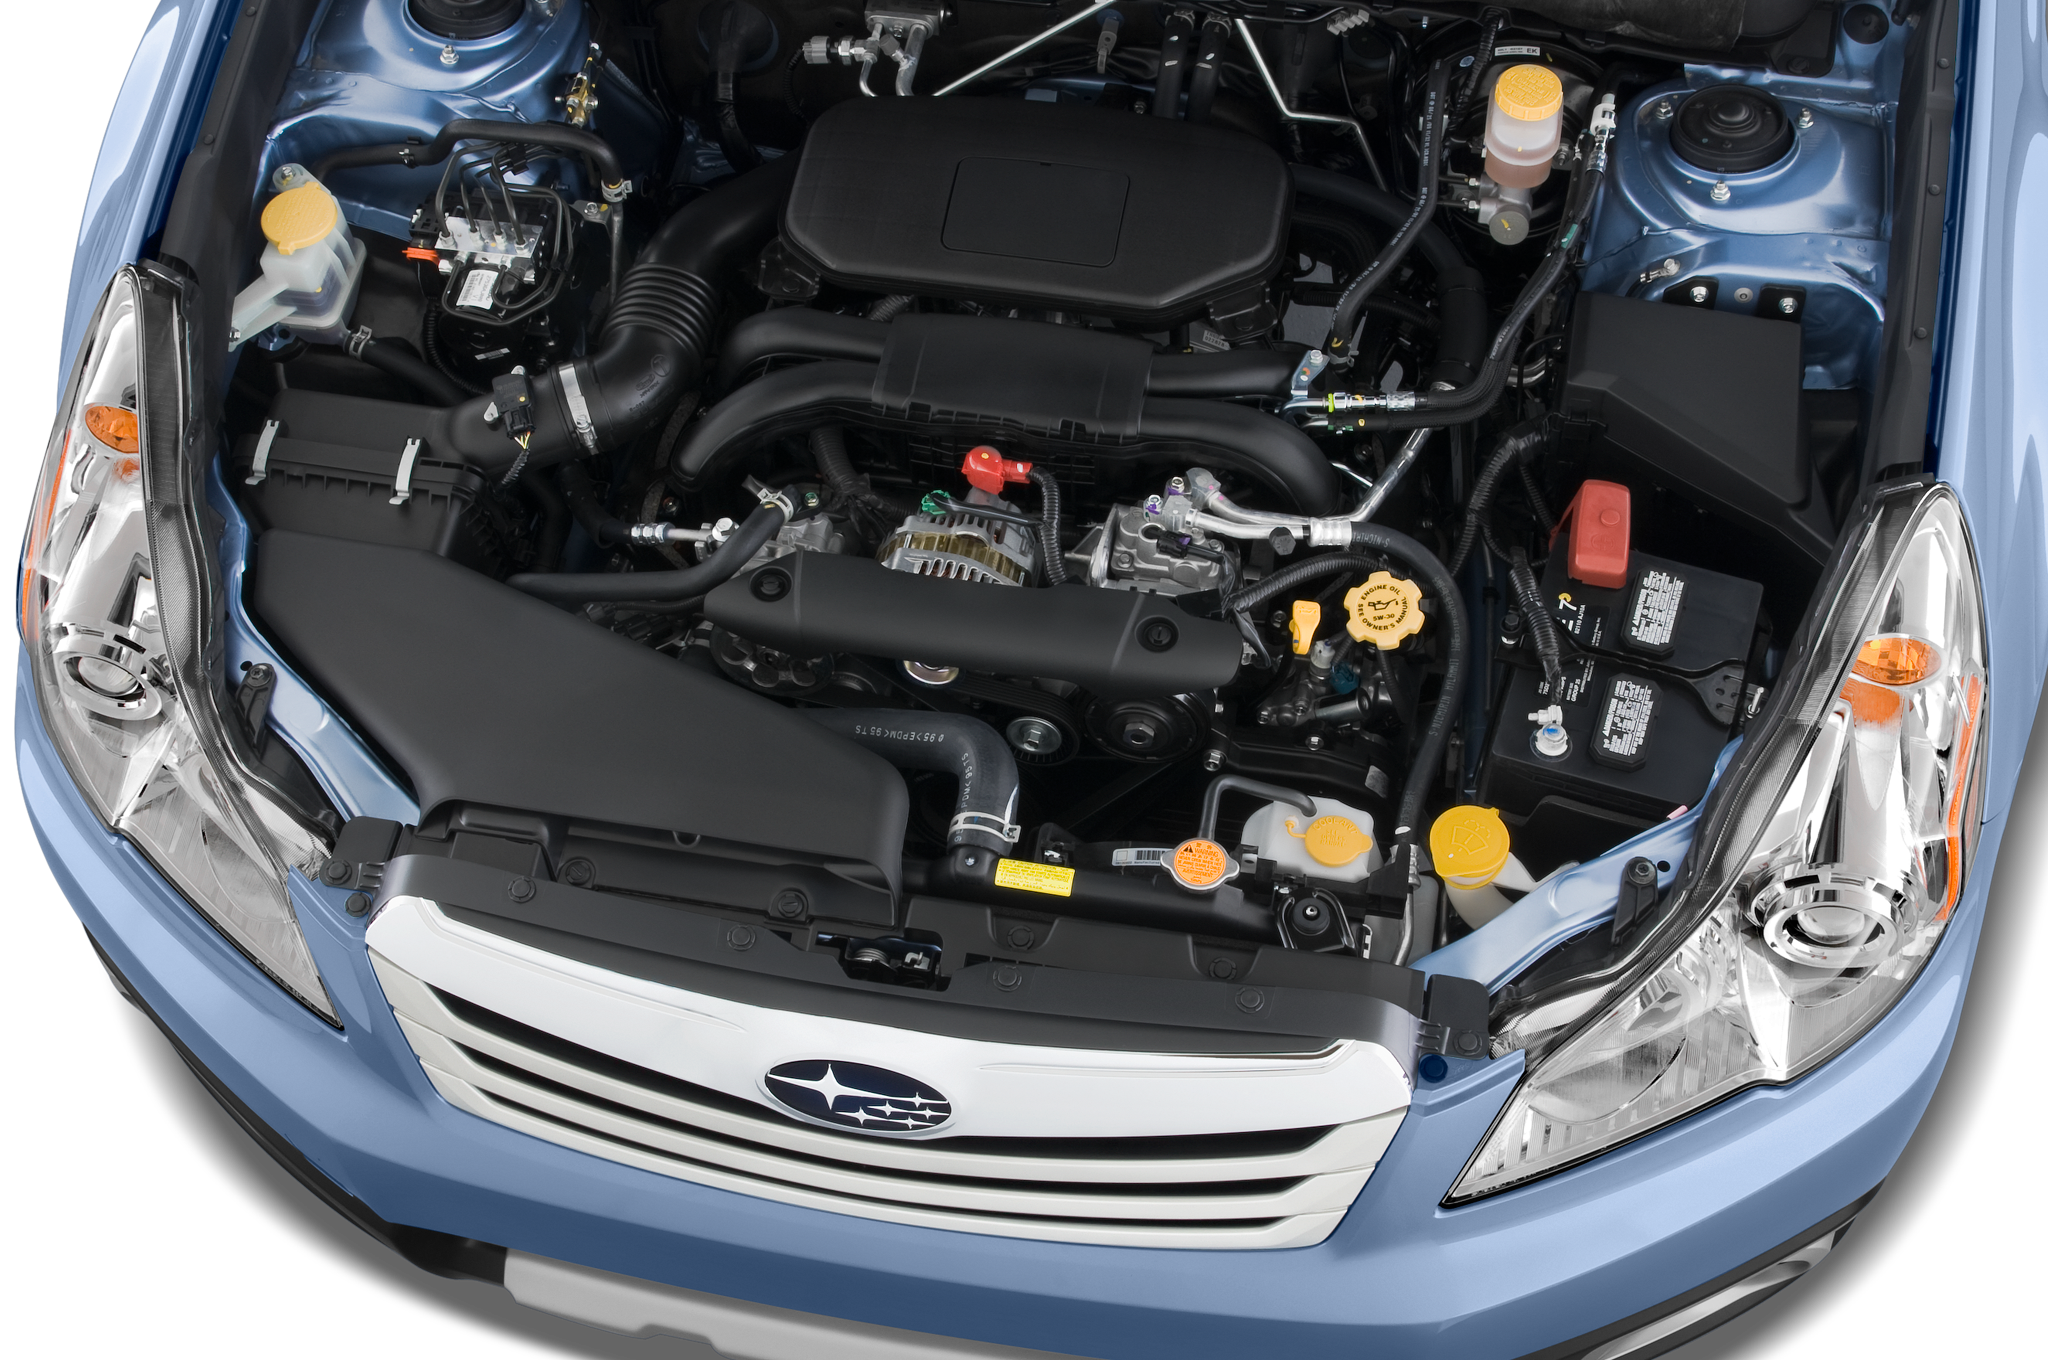 2010 Subaru Outback Engine Diagram - Data Wiring Diagram Update on flat-twelve engine, 2.5 chrysler engine diagram, subaru ef engine, 2002 subaru engine diagram, subaru wrx engine diagram, 2.5 nissan engine diagram, 2004 subaru engine diagram, subaru 2.5 timing marks diagram, flat-eight engine, flat-four engine, 01 legacy 2.5l timing diagram, subaru en engine, flat engine, subaru ea engine, flat-six engine, subaru legacy turbo engine diagram, wiring diagram, 2.5 jeep engine diagram, subaru forester engine diagram, 2.5 suzuki engine diagram, subaru er engine, subaru outback engine diagram,